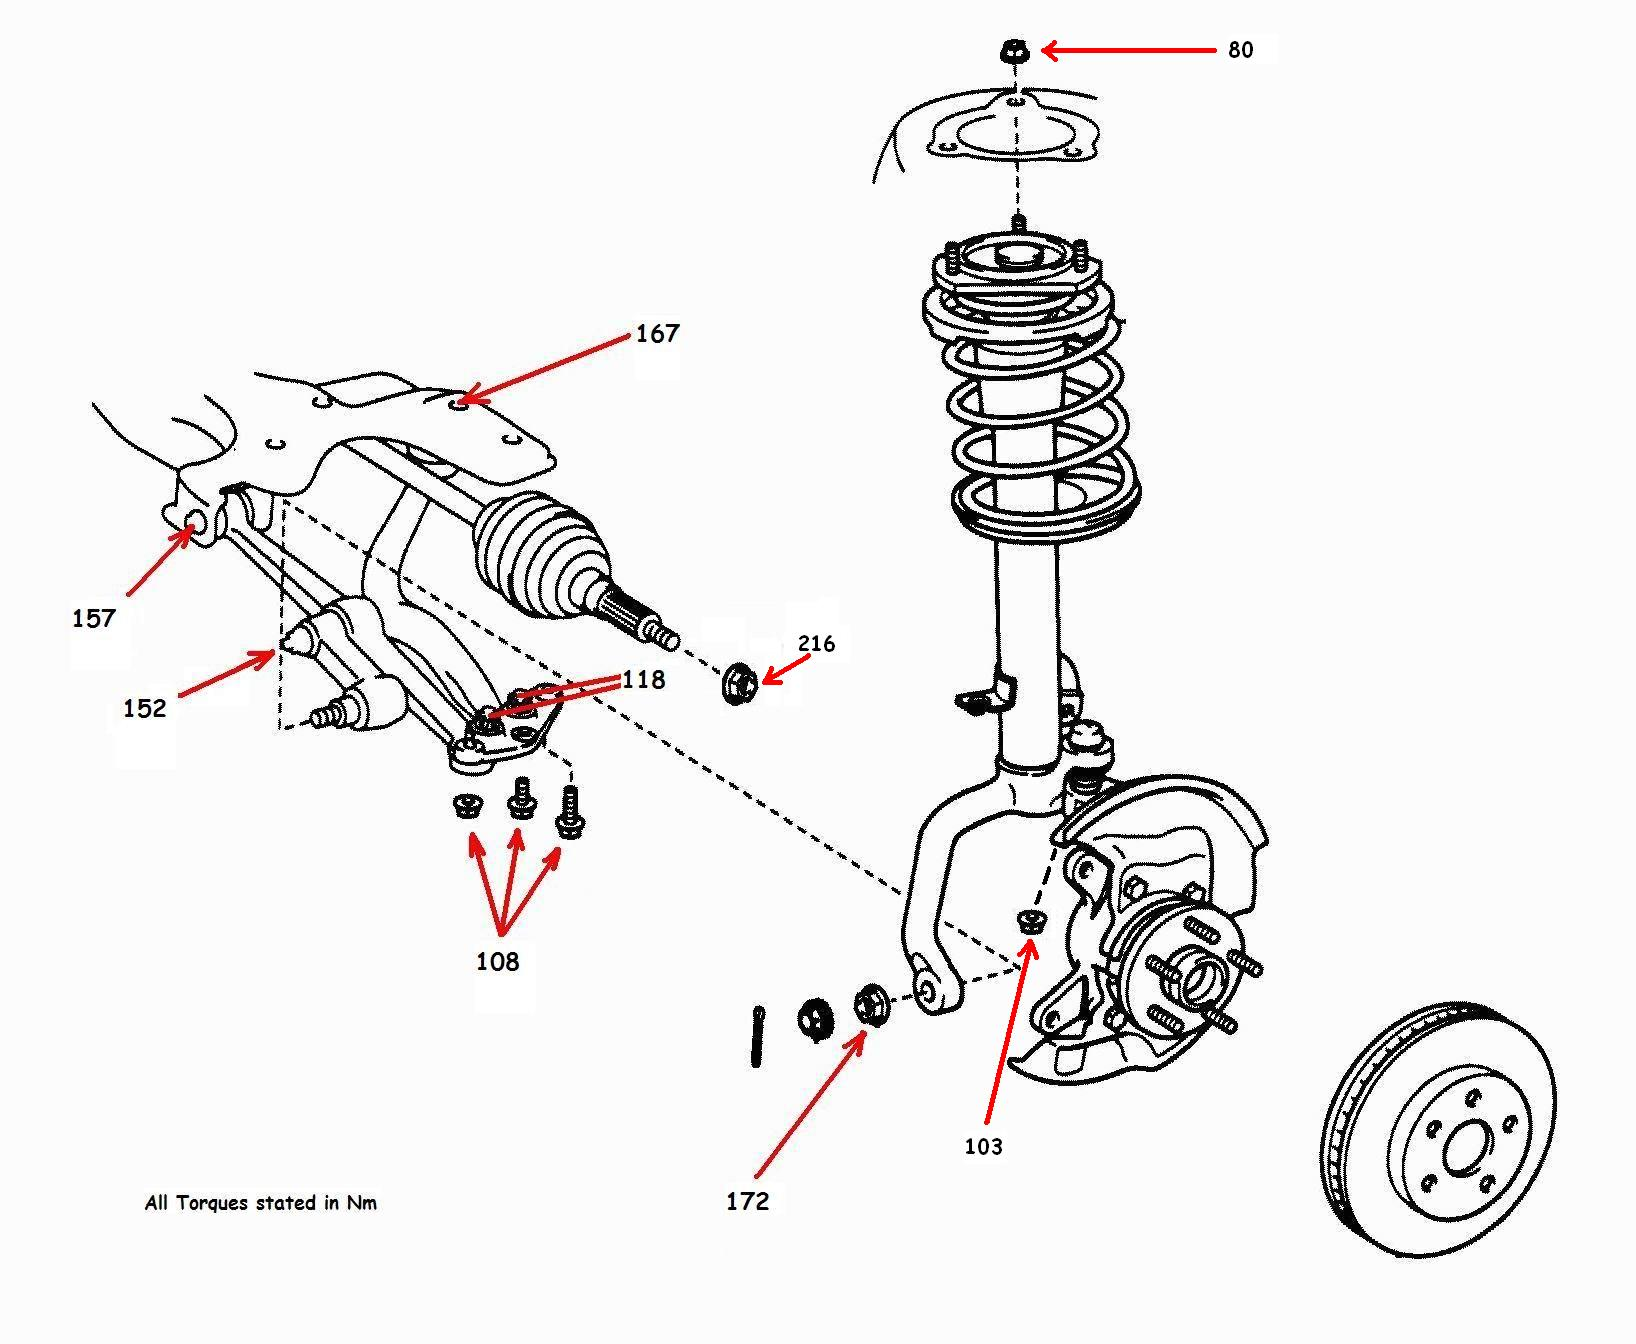 Fj Cruiser Wiring Schematic, Fj, Free Engine Image For